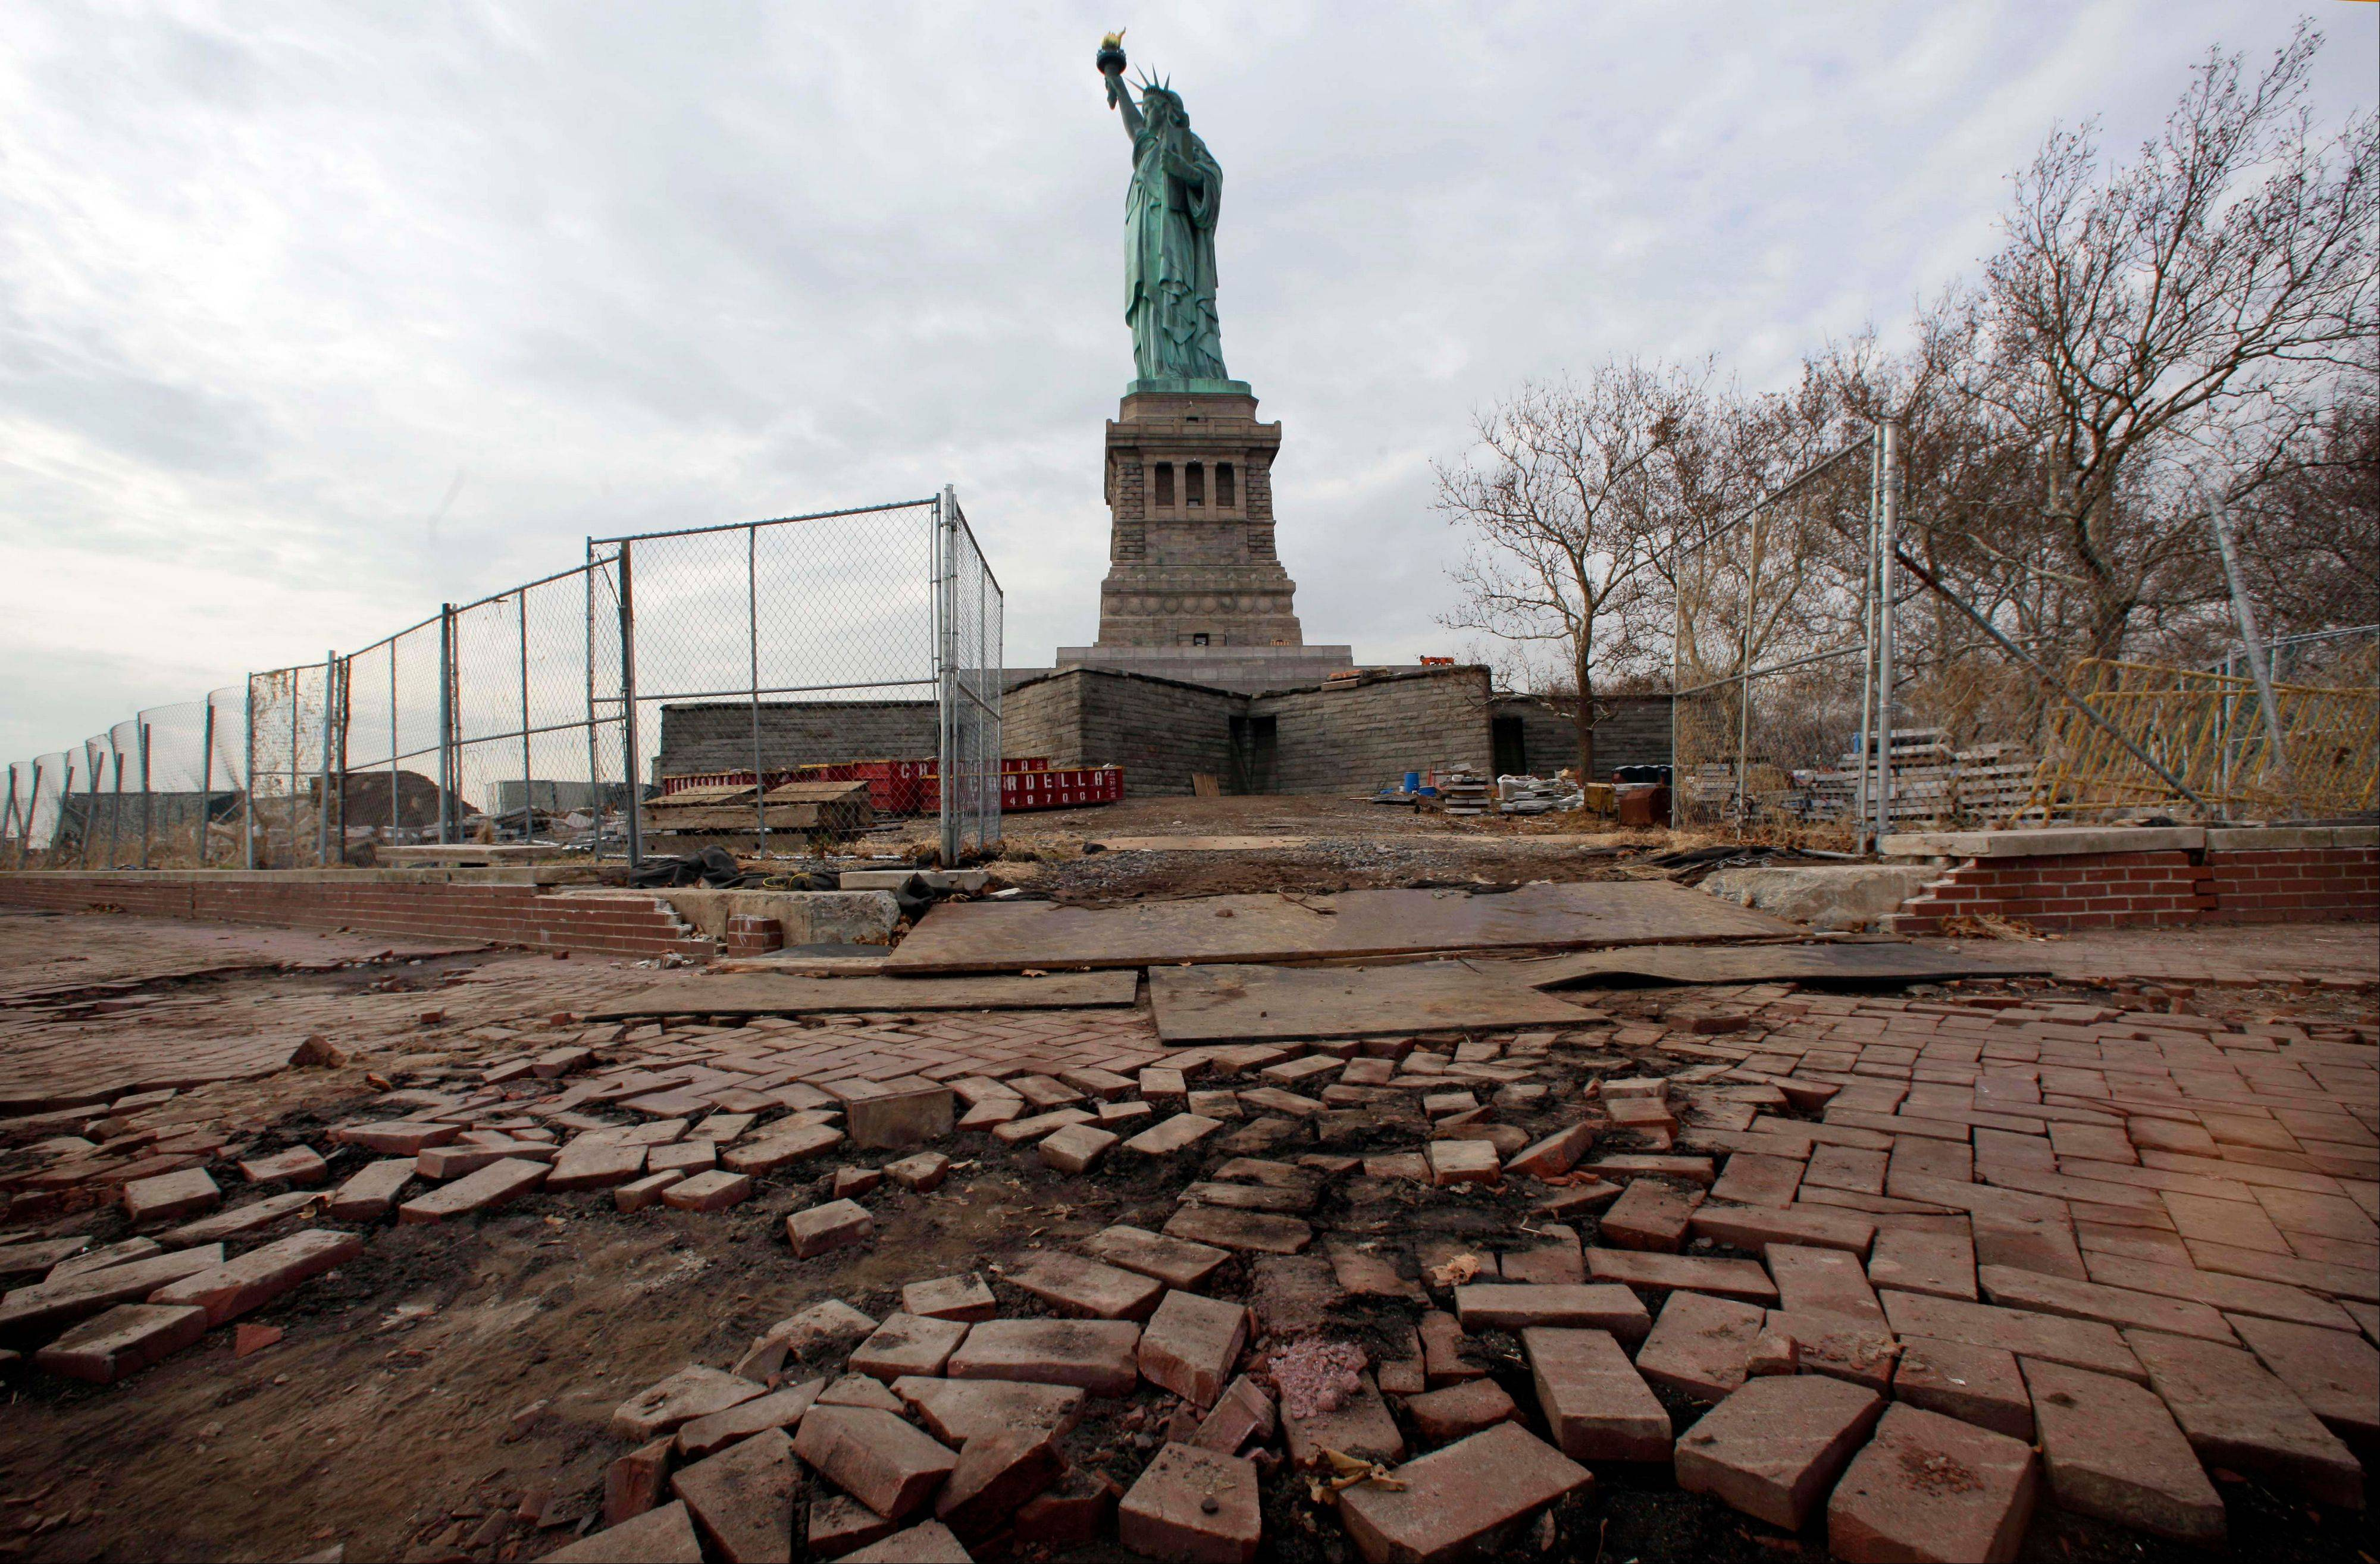 Parts of the brick walkway of Liberty Island that were damaged in Superstorm Sandy are shown during a tour of New Yorkís Liberty Island.